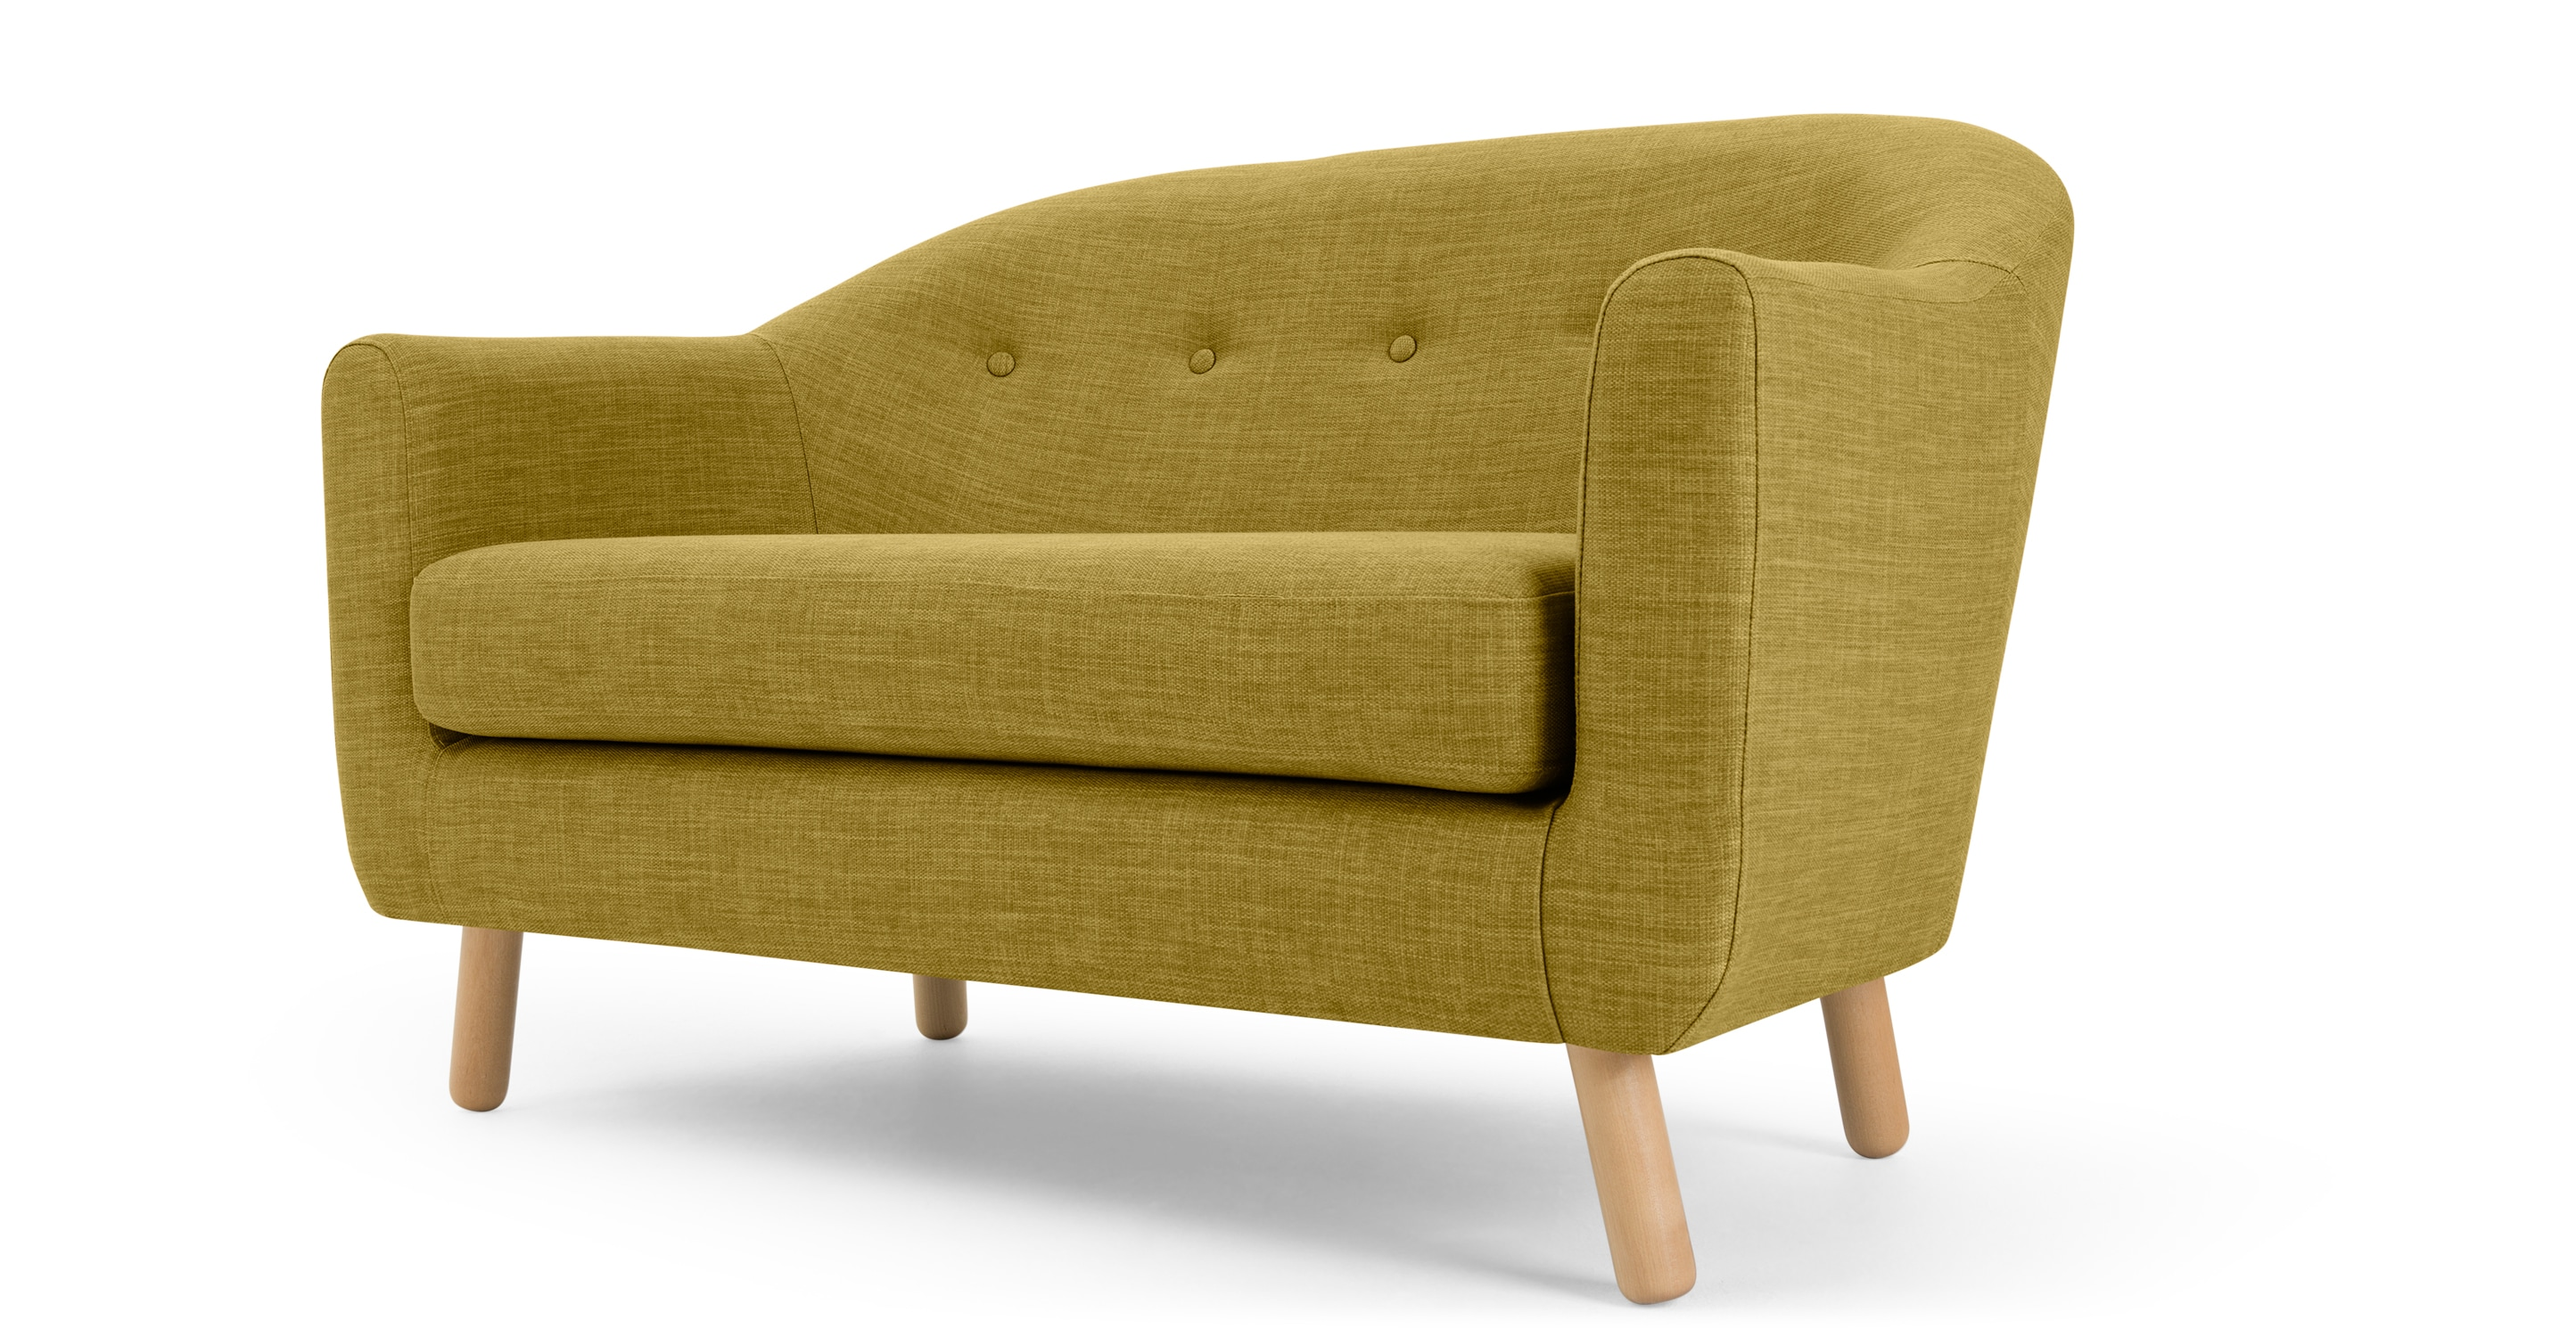 Made Quentin Sofa Lottie 2 Seat Sofa, Olive Green • Sofas Etc